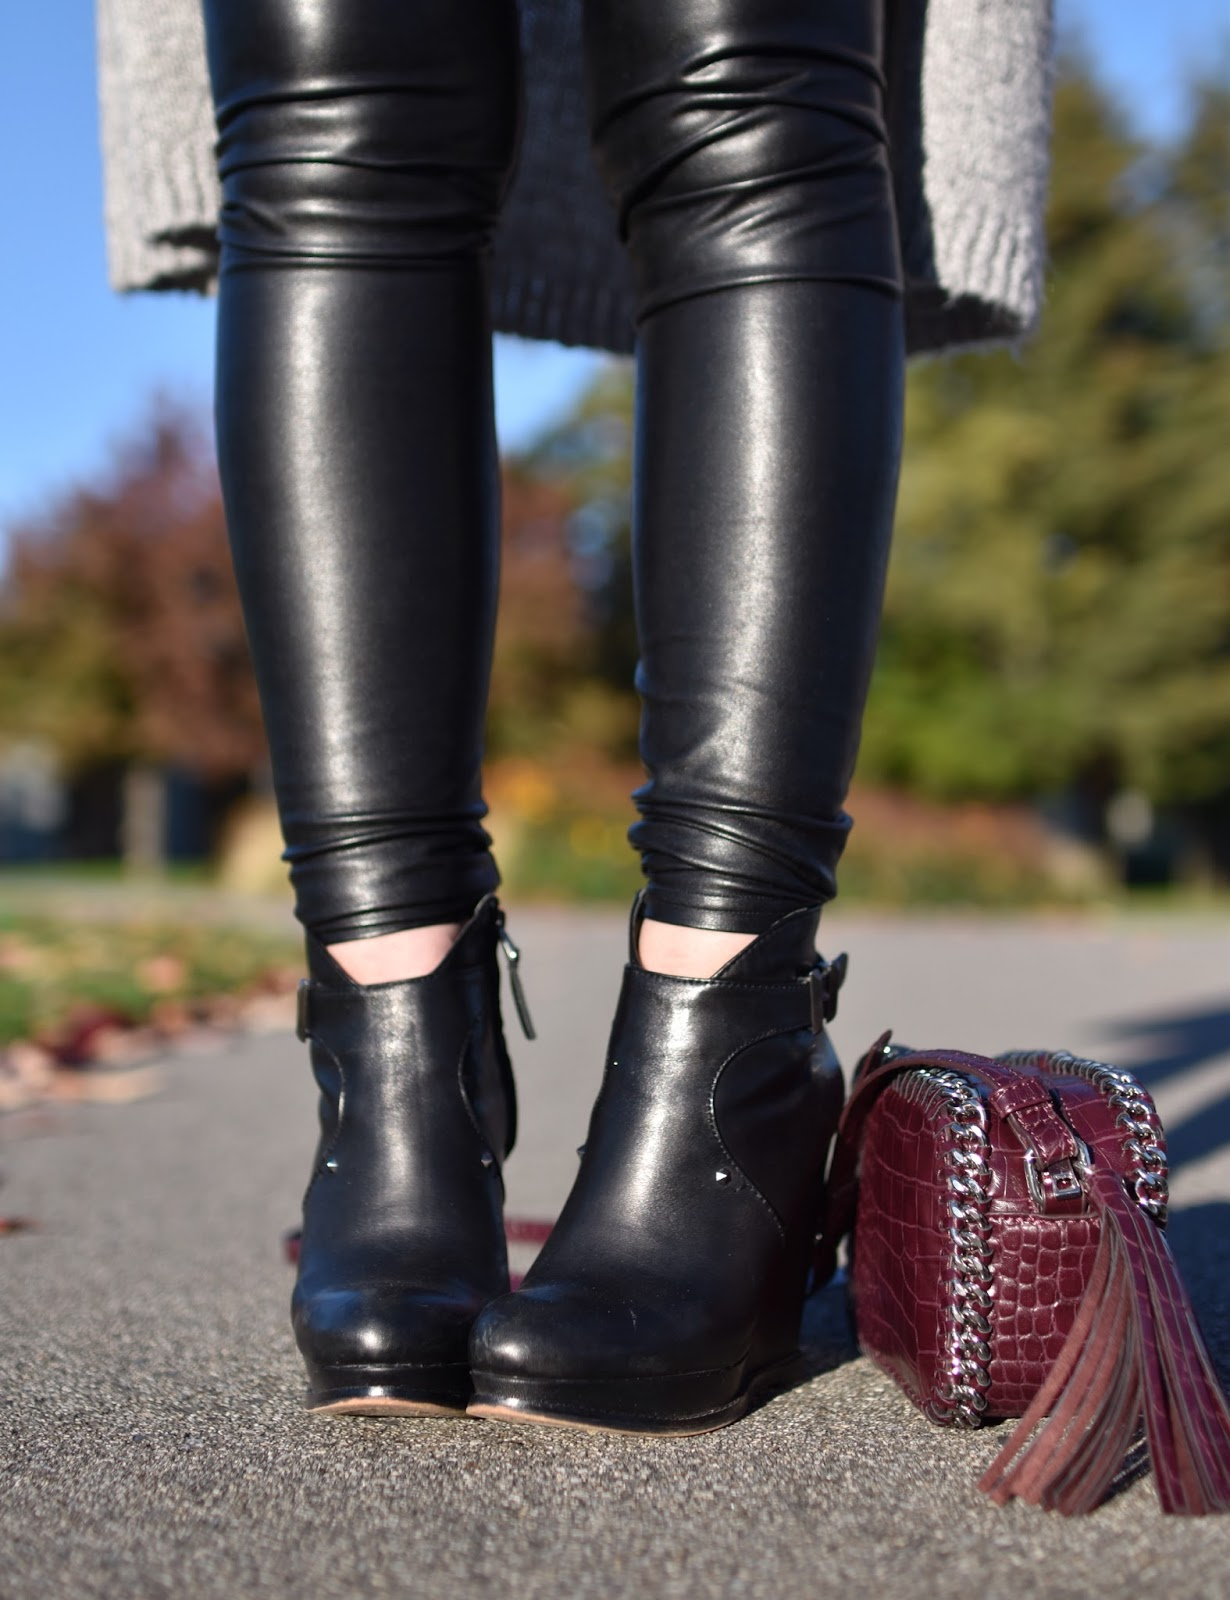 Outfit inspiration c/o Monika Faulkner - vegan leather leggings, Sam Edelman wedge booties, long cardigan, Forever 21 cross-body bag